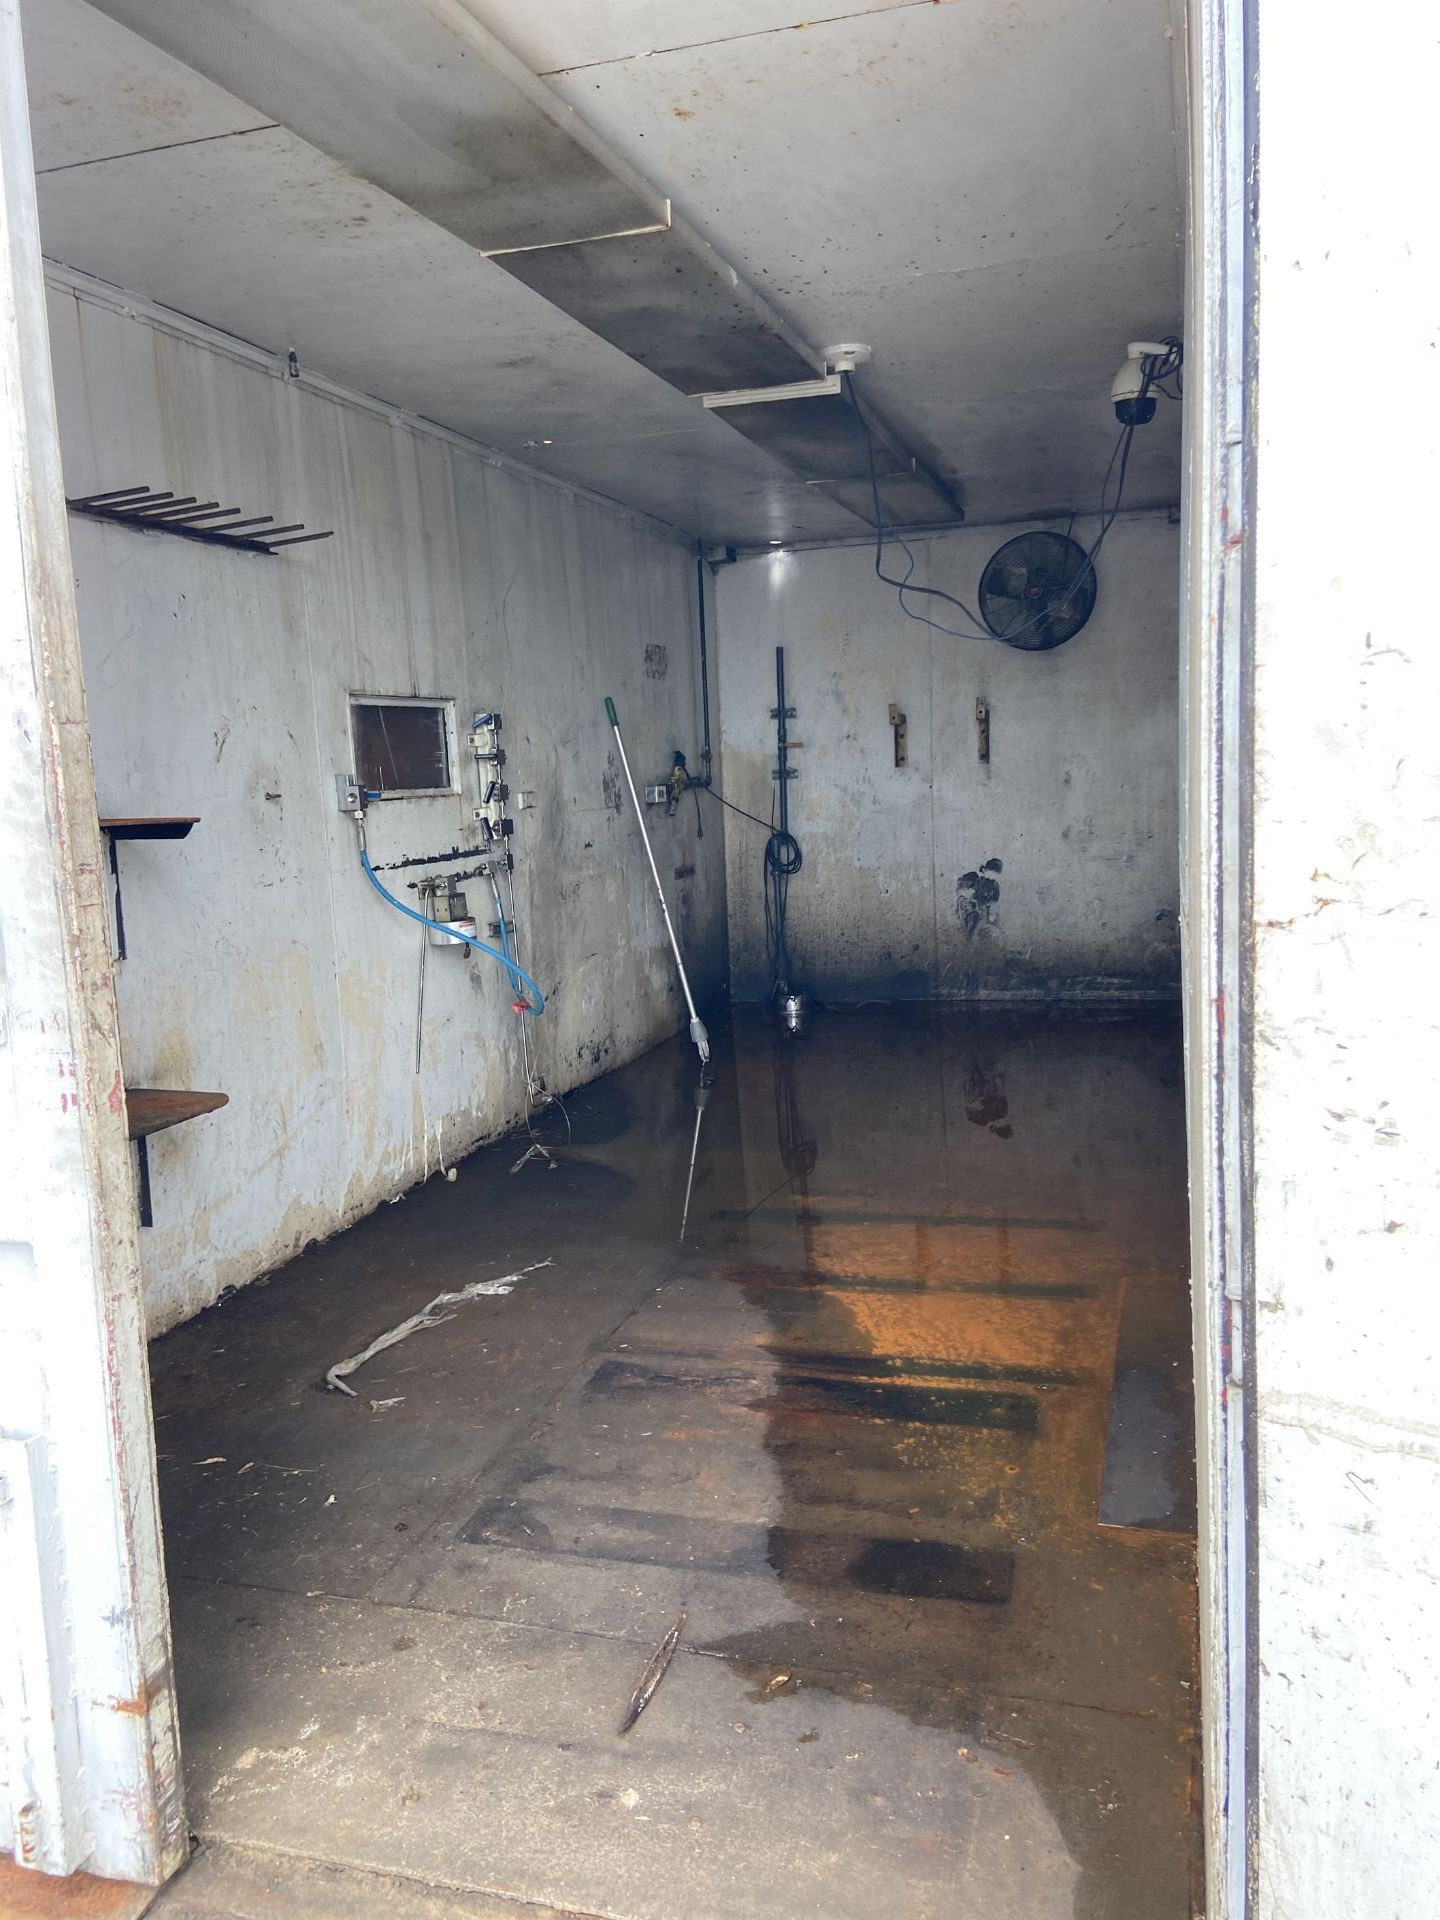 20' Container Test Cell - Image 2 of 2